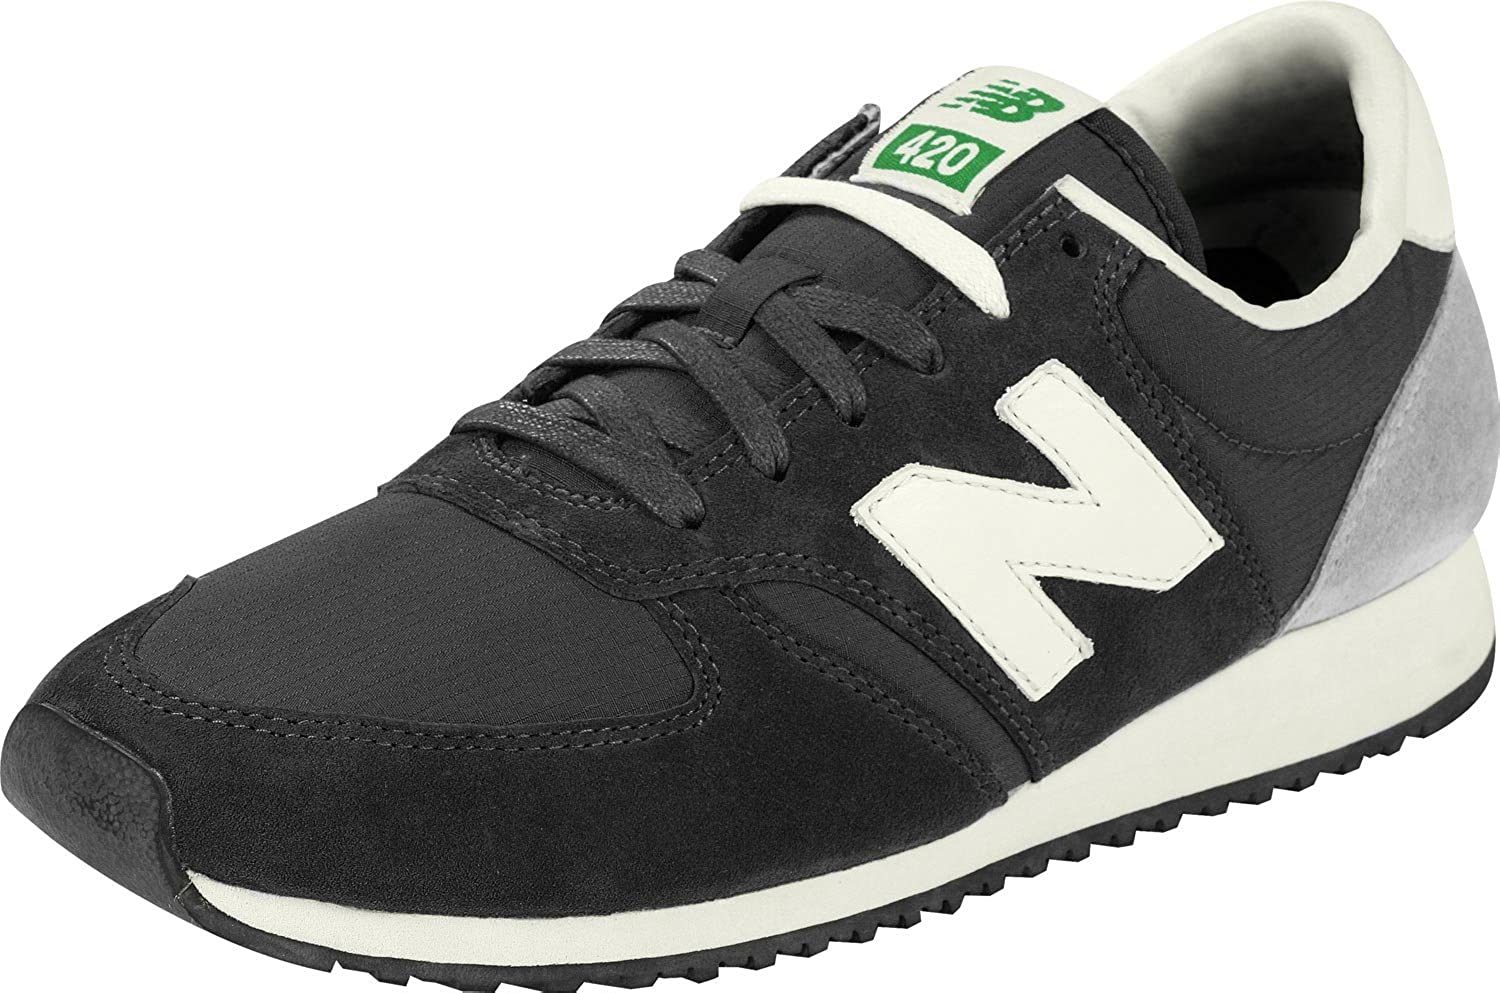 New Balance U420, Men's shoes for First Steps